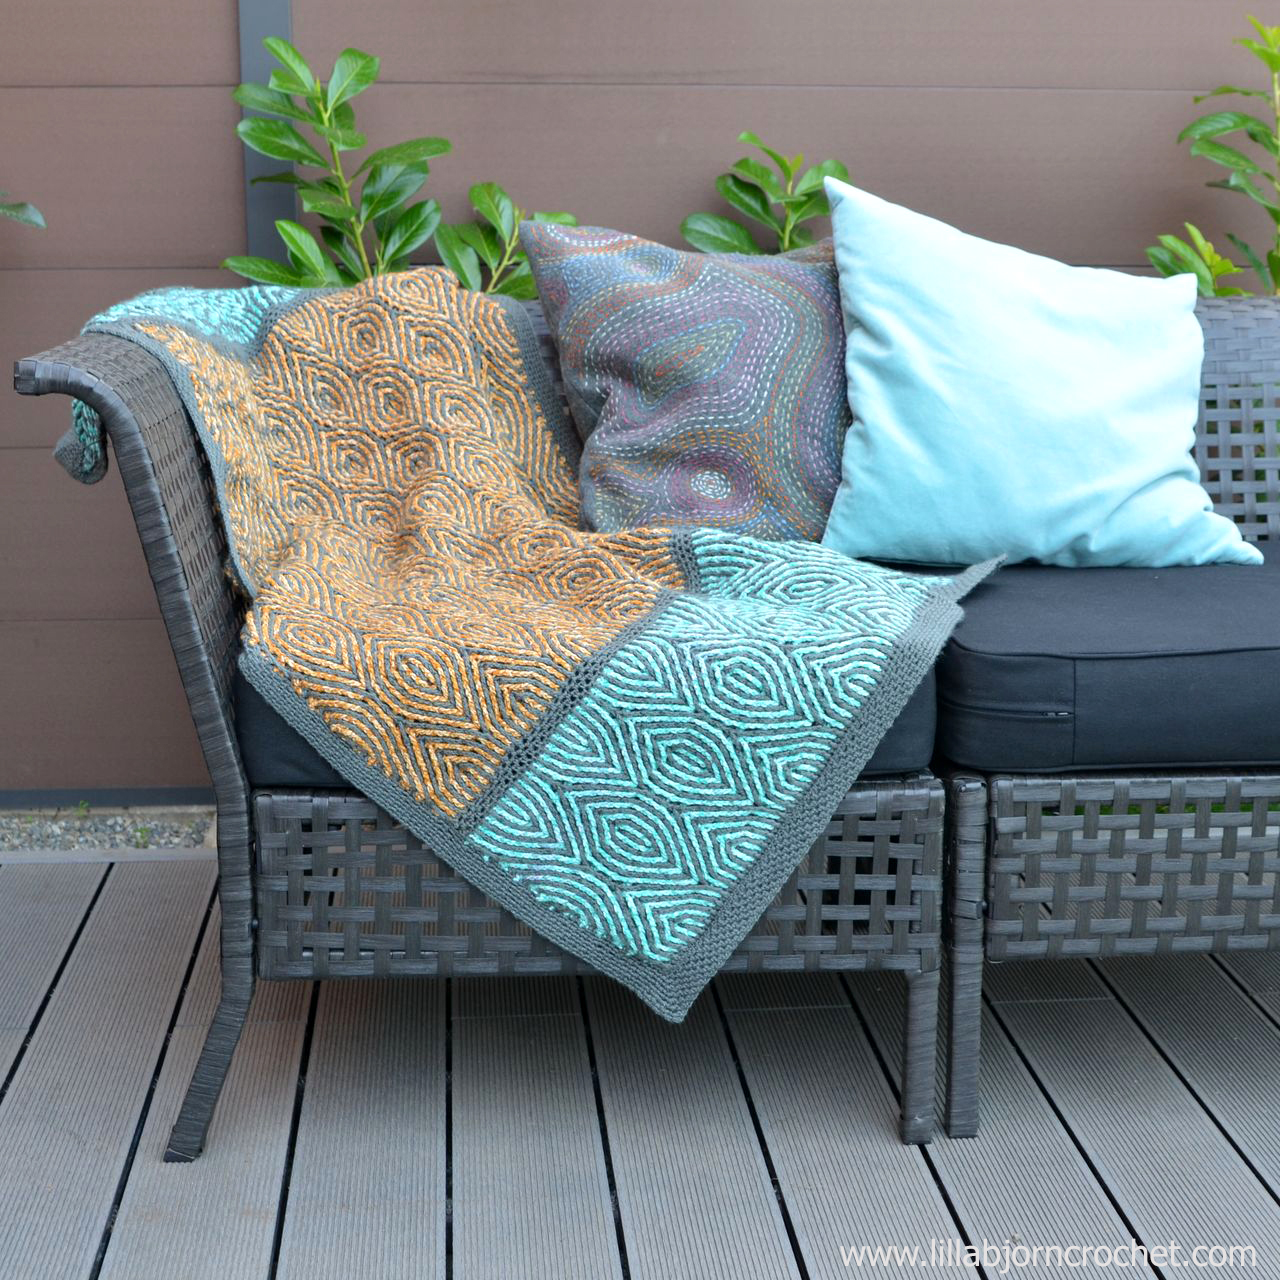 "Brioche Waves crochet pattern can be used for everything: blankets, cowls, scarves, trivets, potholders, rugs... you name it. The pattern comes in two versions: ""airy"" with holes and well draped, and ""overlay"" which creates a firm and sturdy fabric. Originally designed by www.lillabjorncrochet.com"